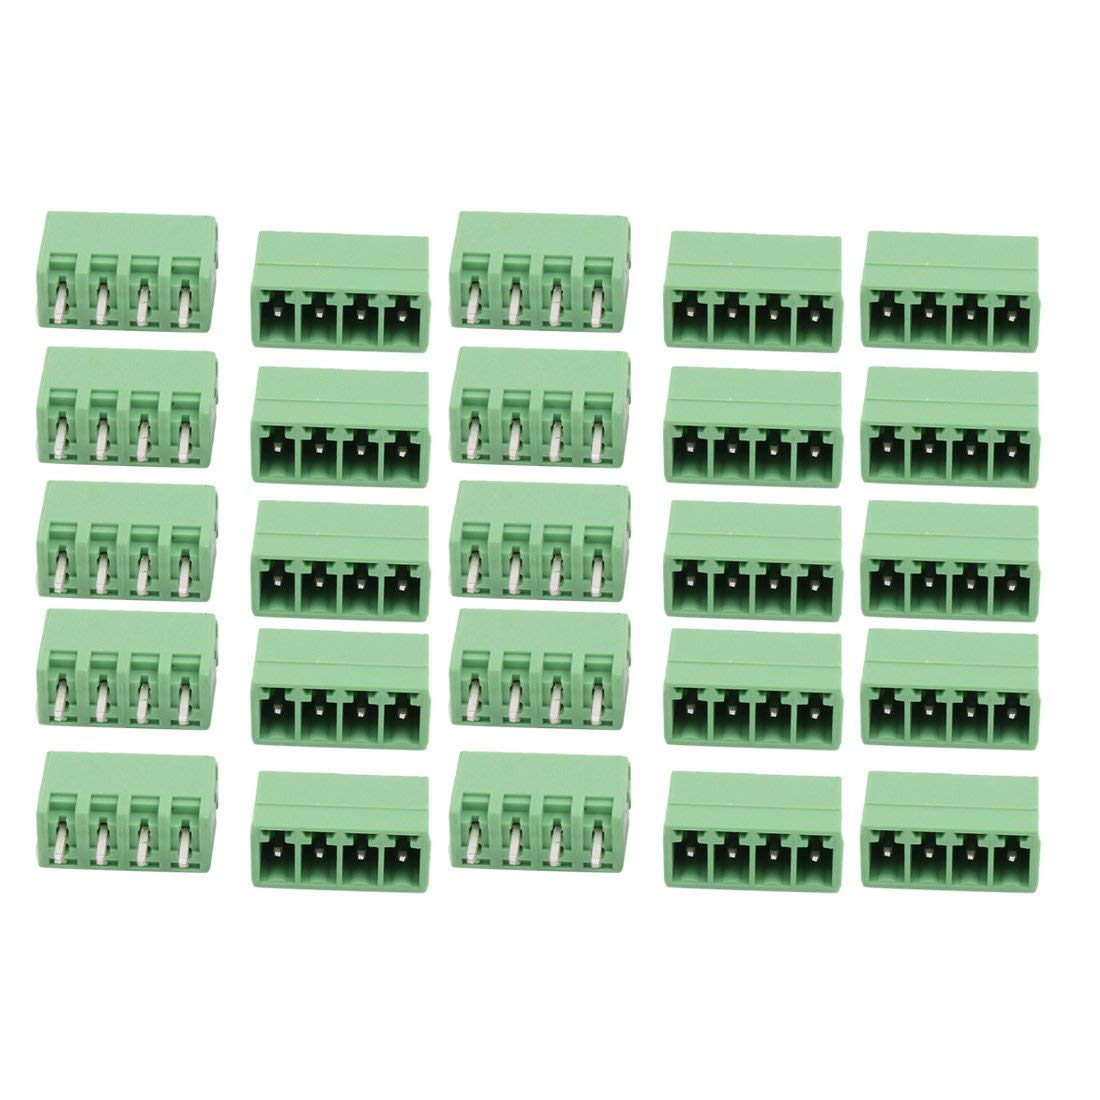 uxcell 25Pcs AC300V 8A 3.81mm Pitch 4P Terminal Block Wire Connection for PCB Mounting